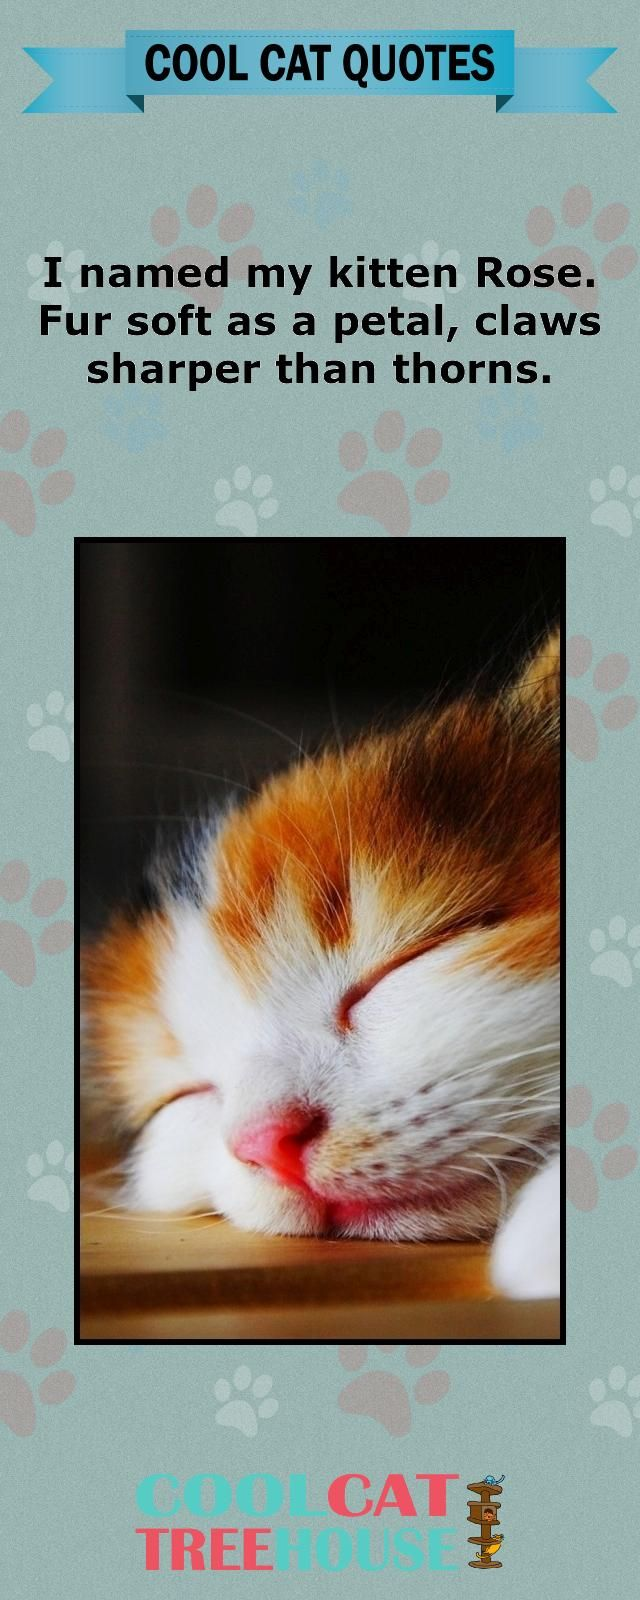 Cats are the inspiration on living a joyful life. Enjoy these words of cat wisdom. | www.coolcattreehouse.com